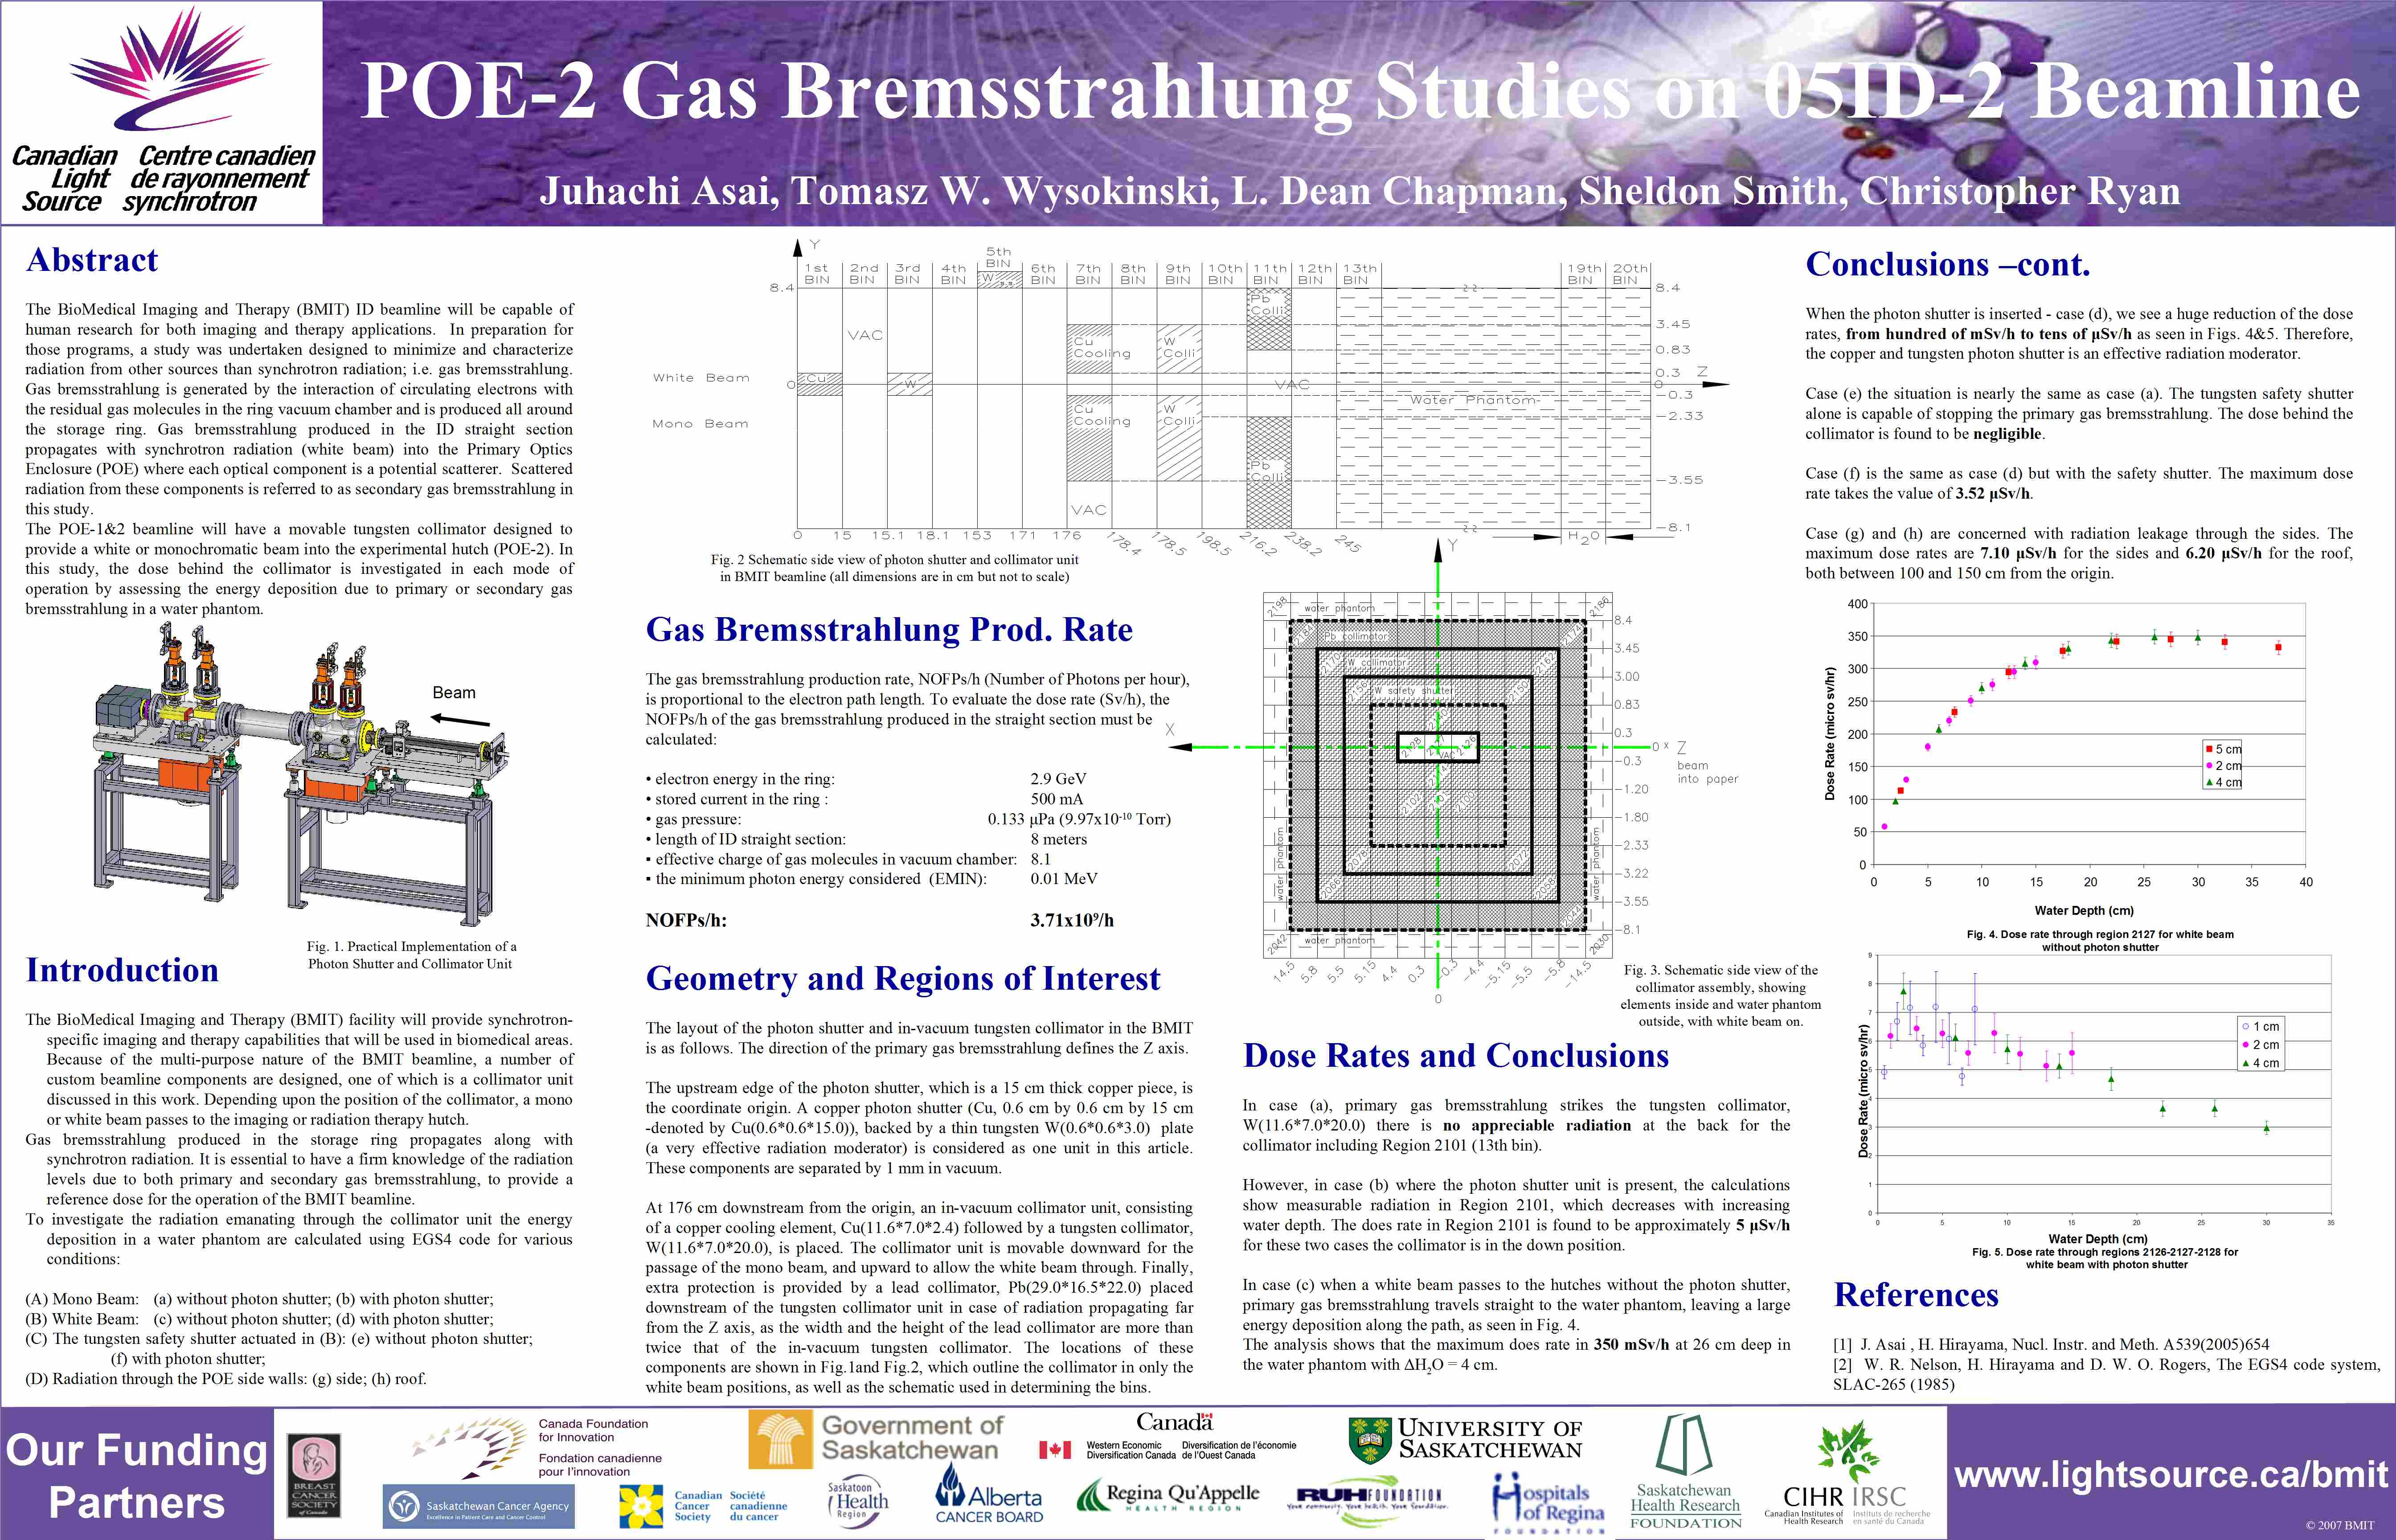 POE-2 Gas Bremsstrahlung Studies on 05ID-2 Beamline Image